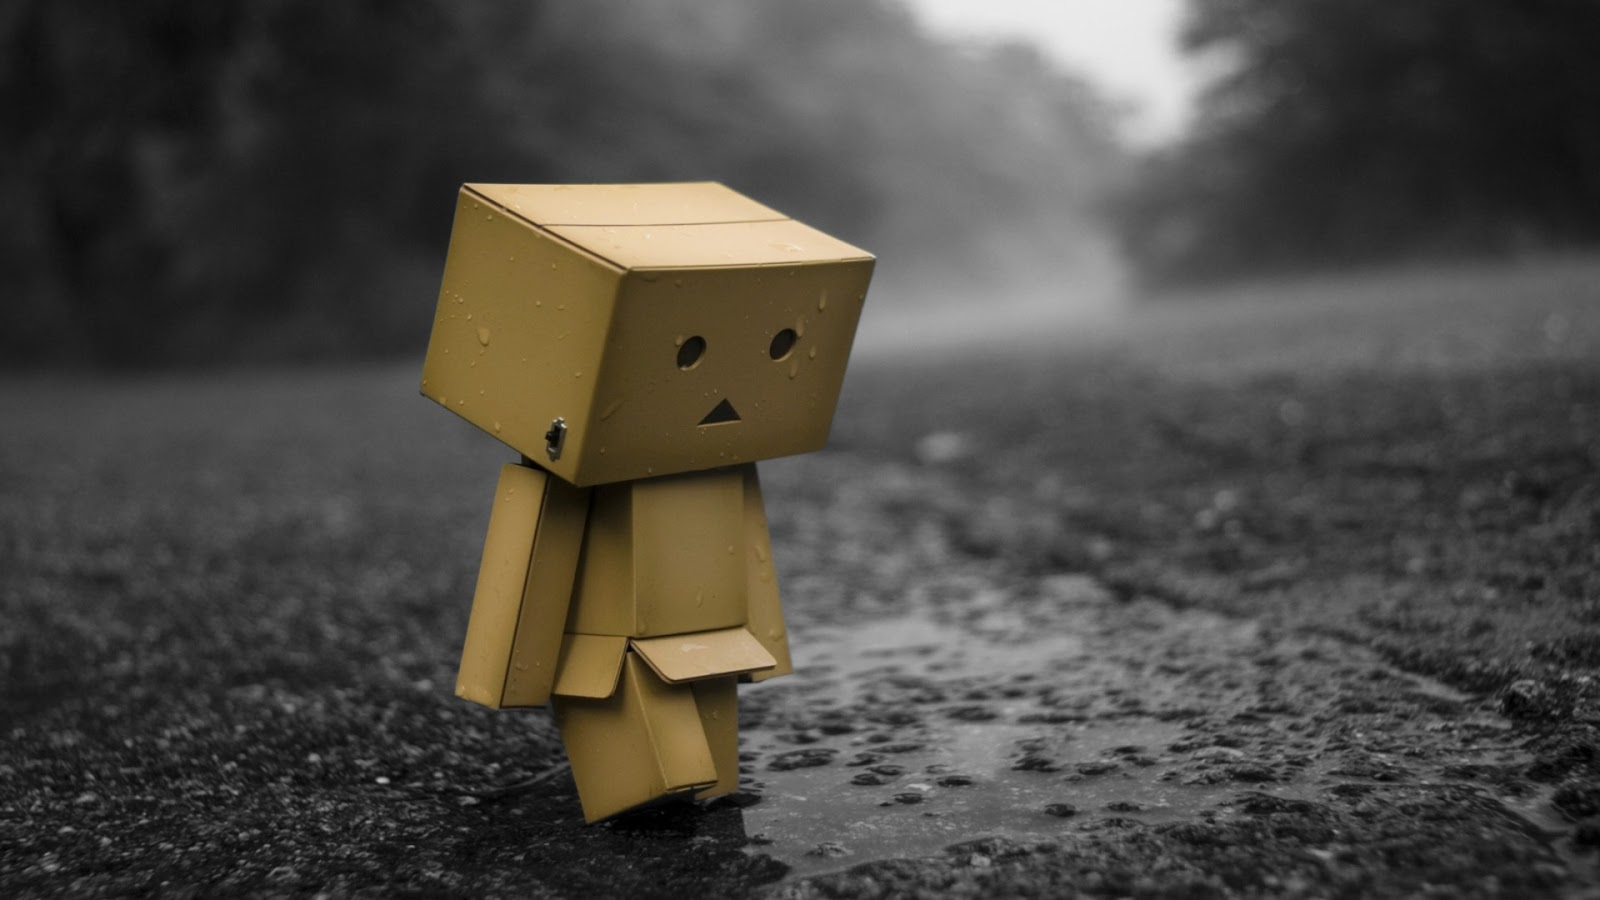 Alone sad Danbo